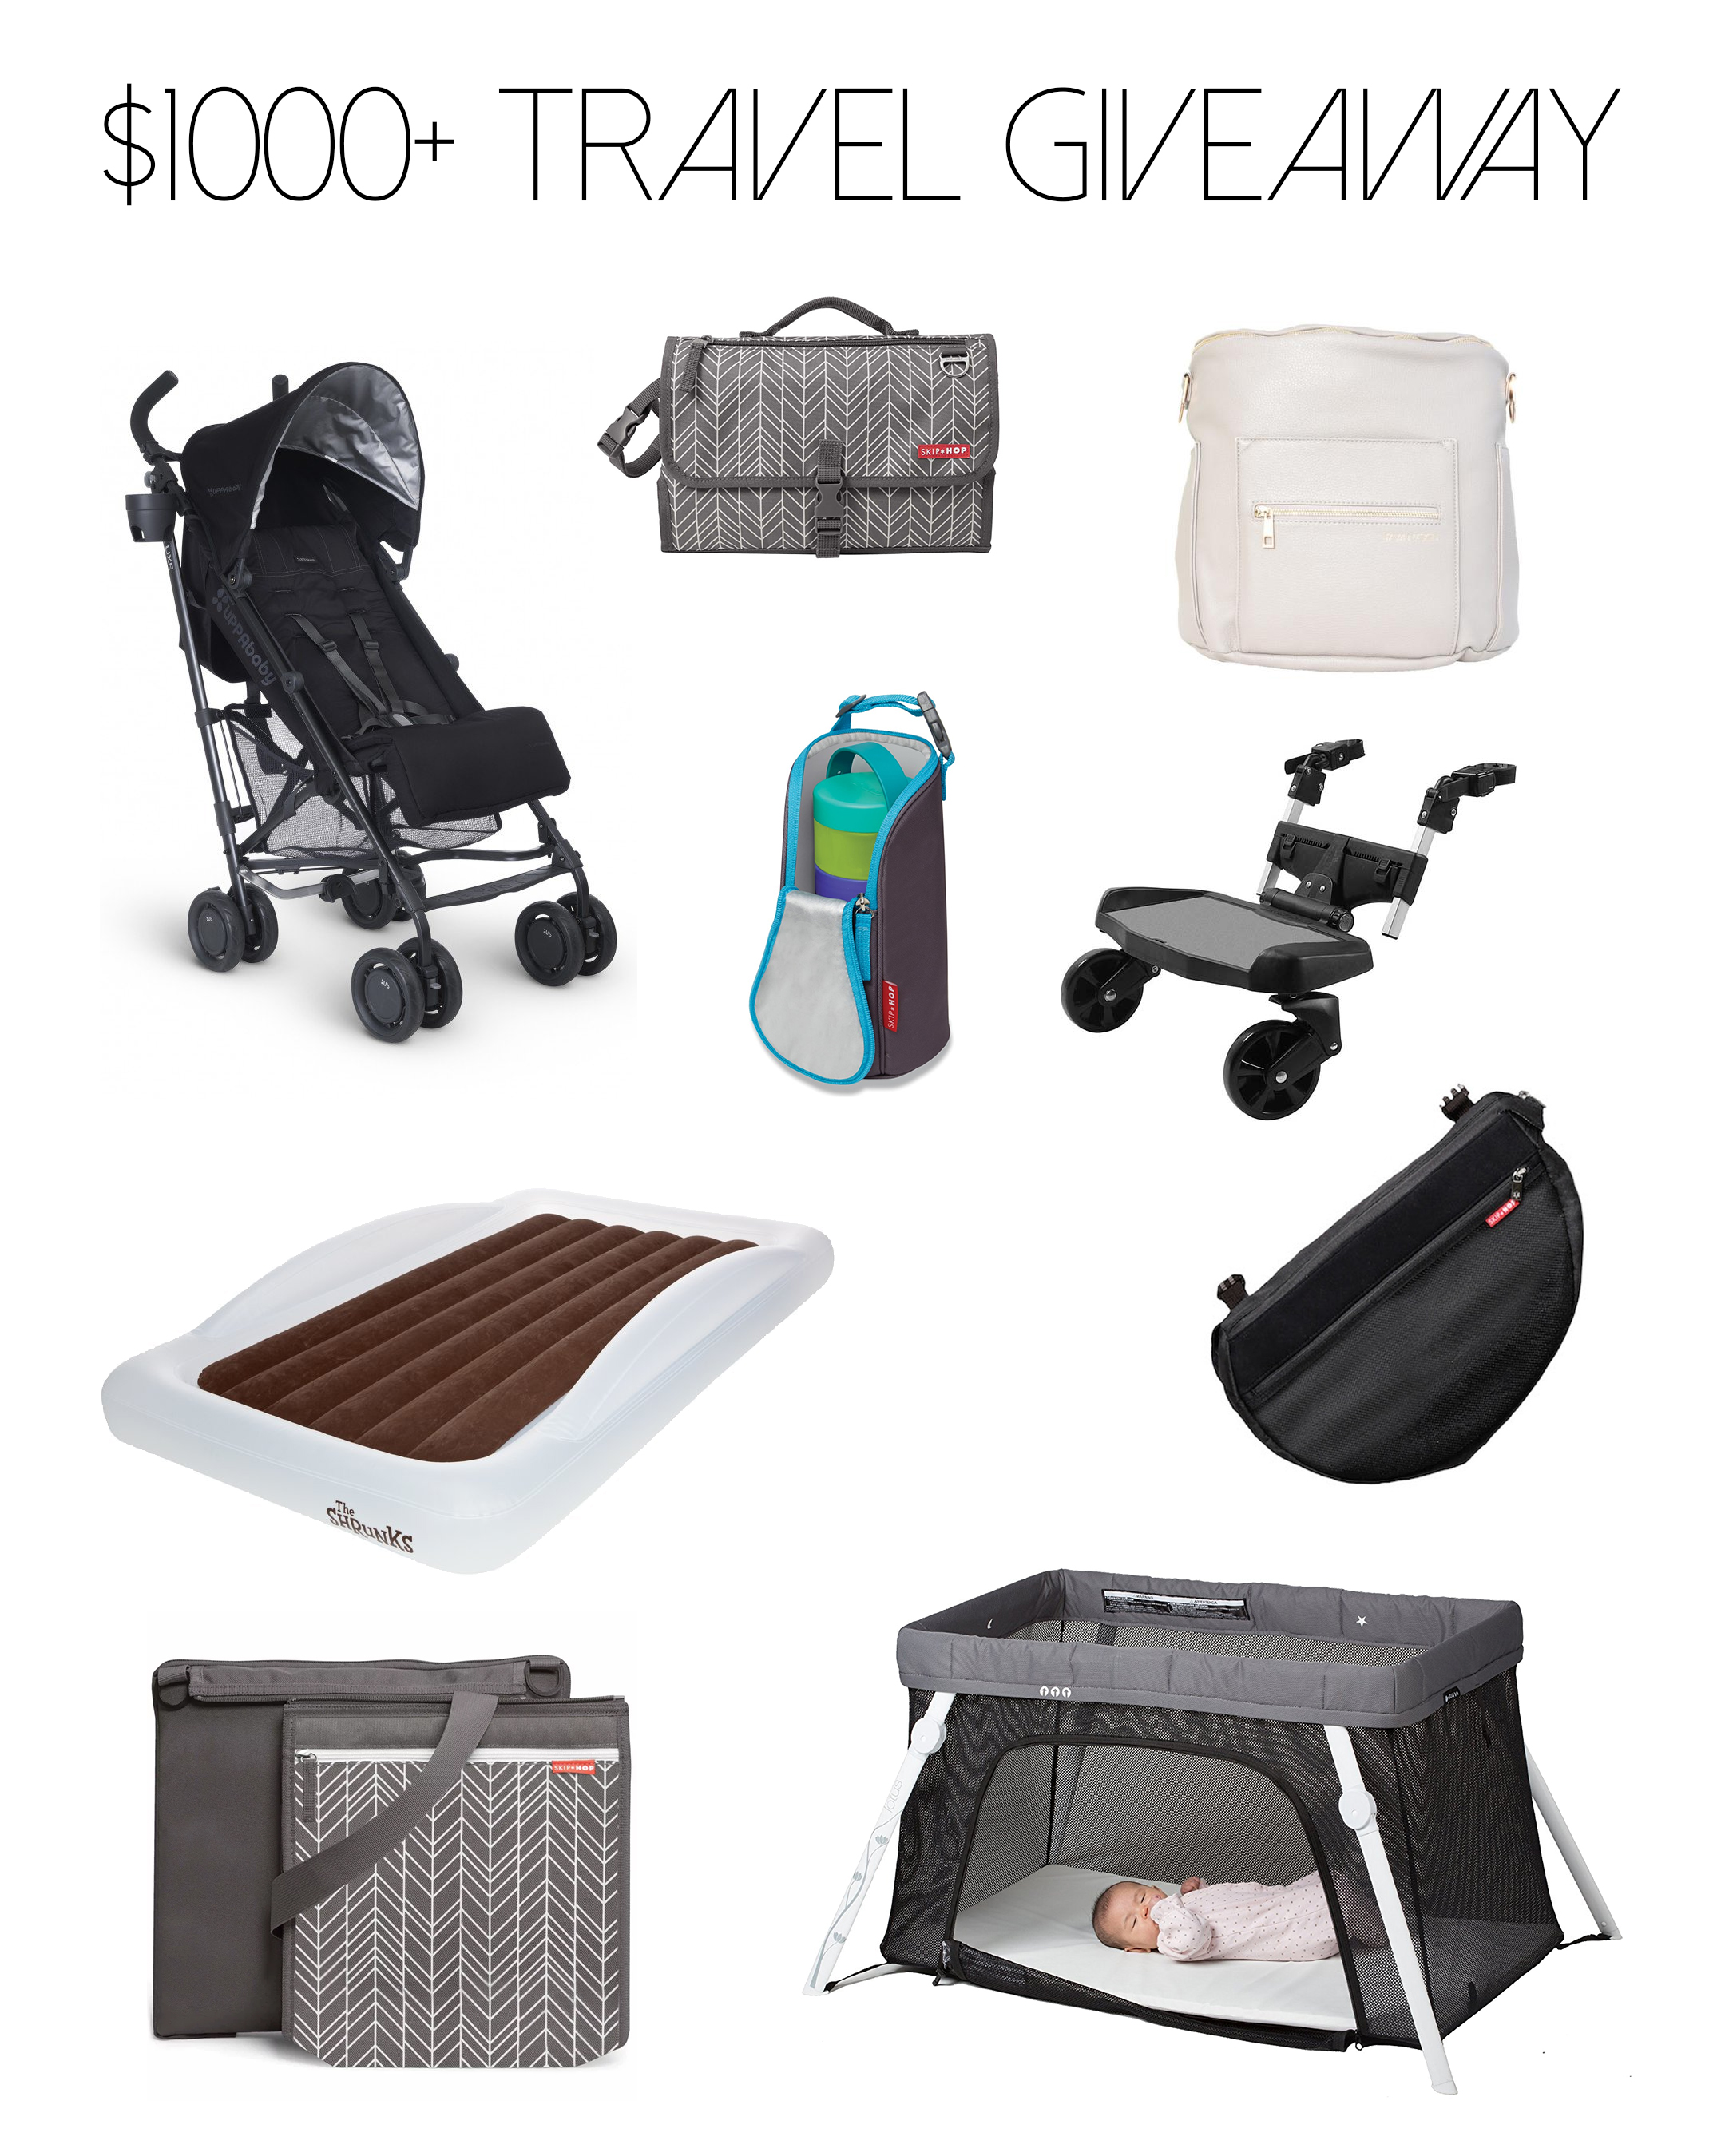 Best travel gear for babies and toddlers - giveaway prize package | Happy Grey Lucky